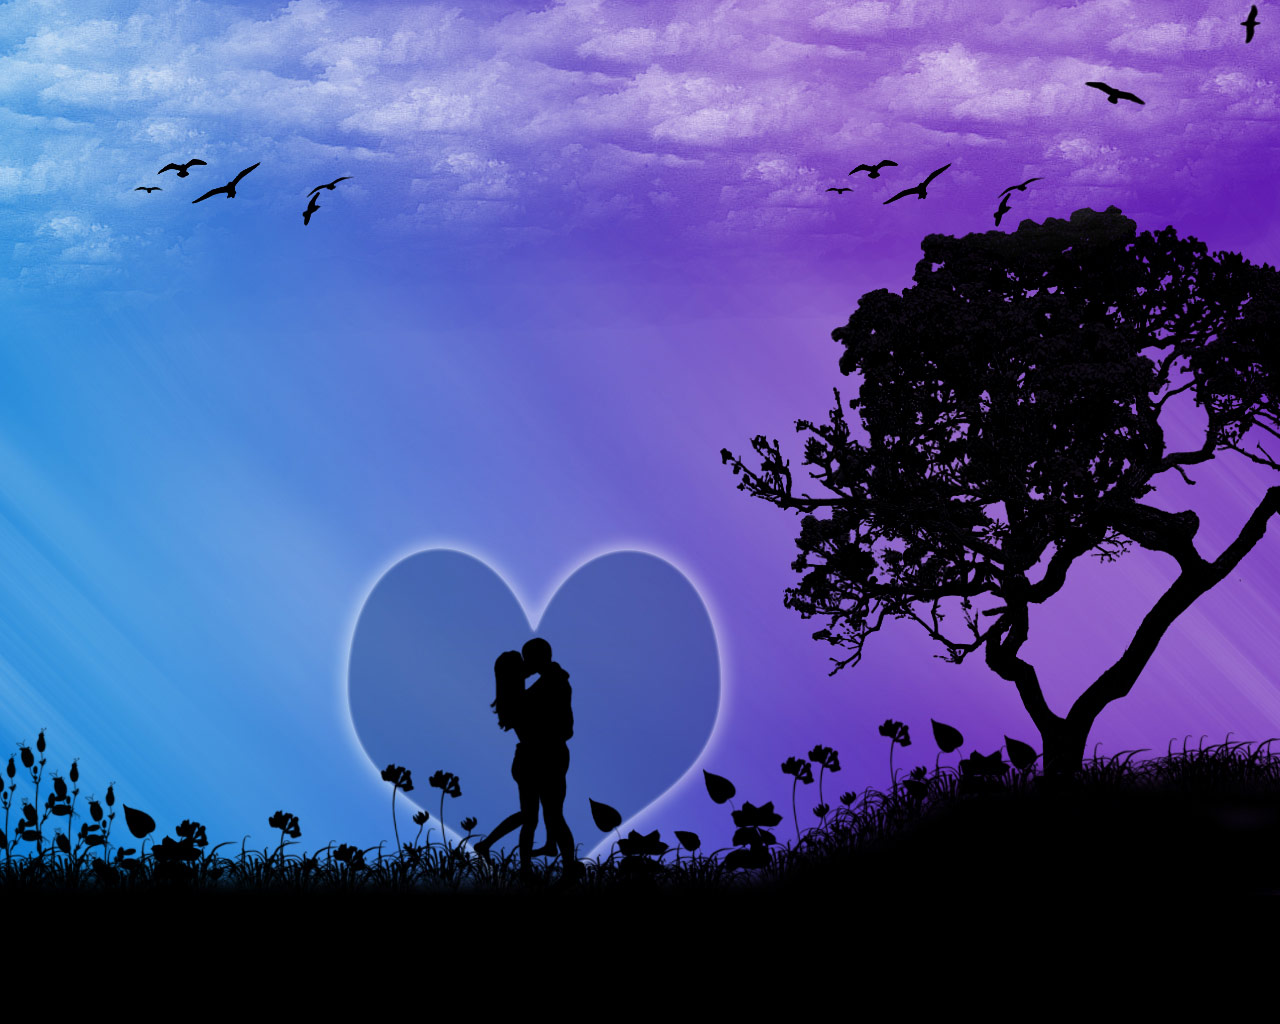 Love Wallpaper For Pc Desktop : Free Wallpaper Dekstop: Real love wallpaper, love wallpapers free